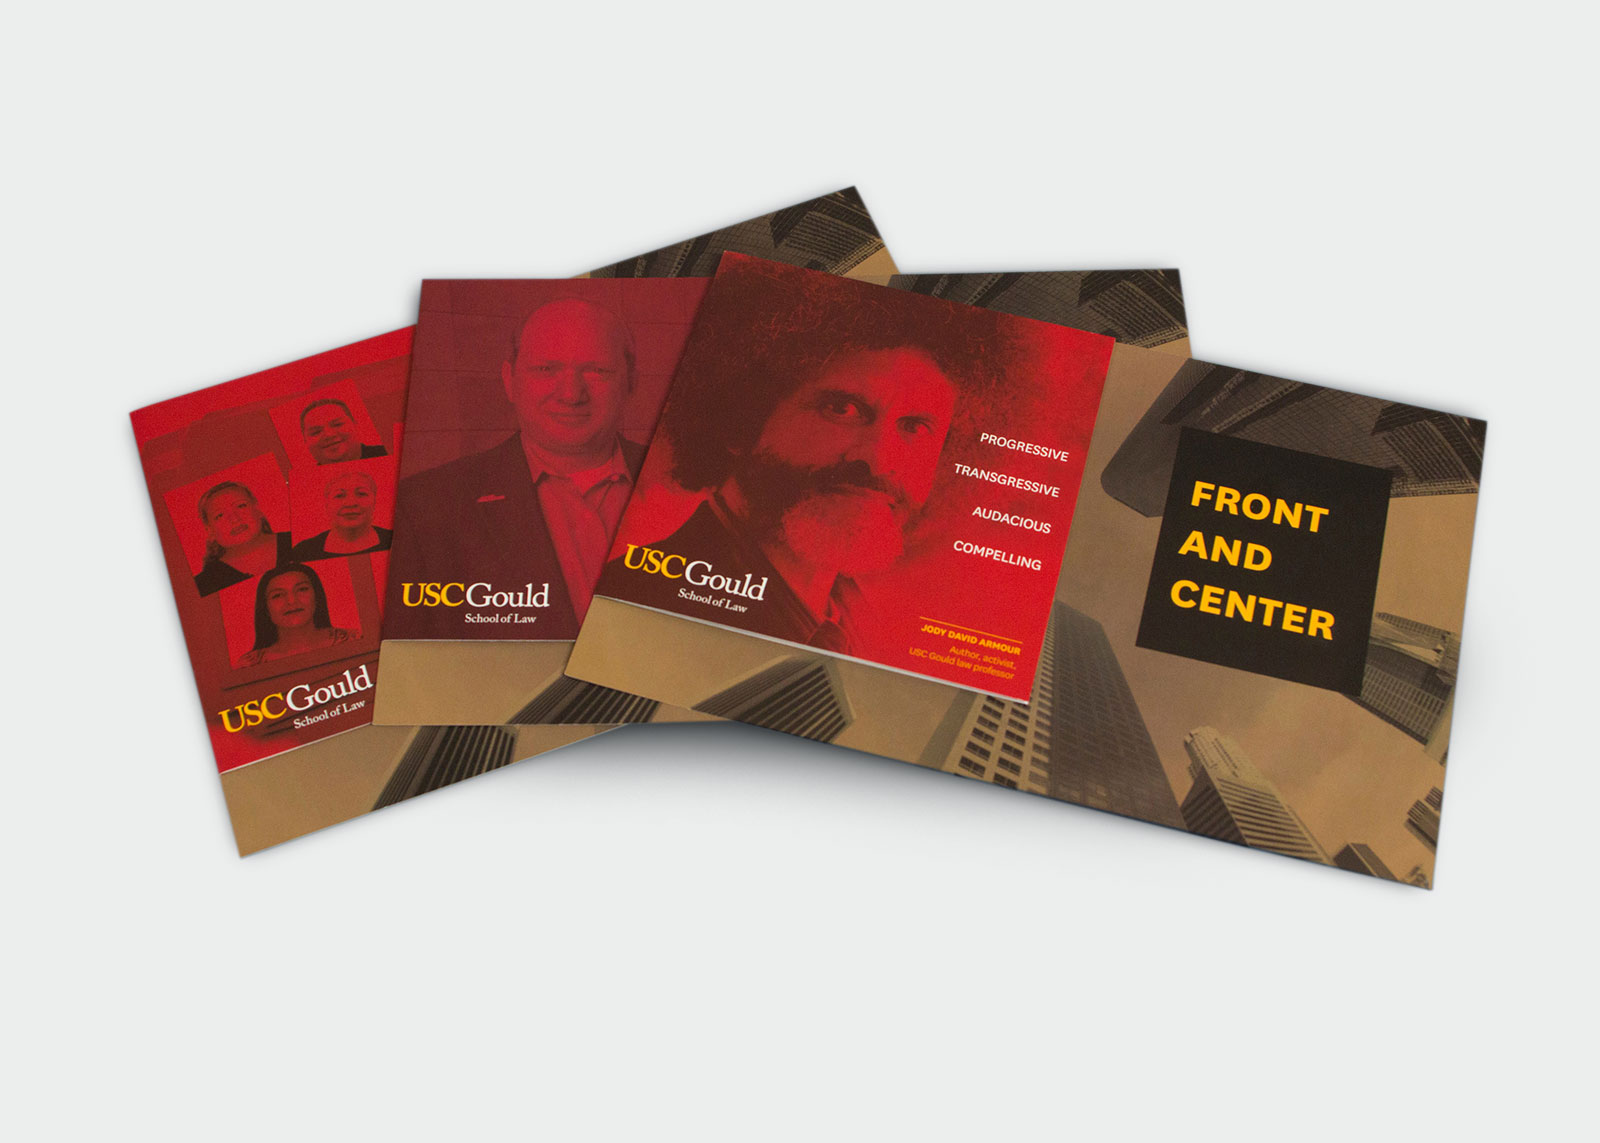 USC Gould School of Law Direct mail campaign showing three mailers with leading faculty on the front covers, as well as Front and Center concept messaging.